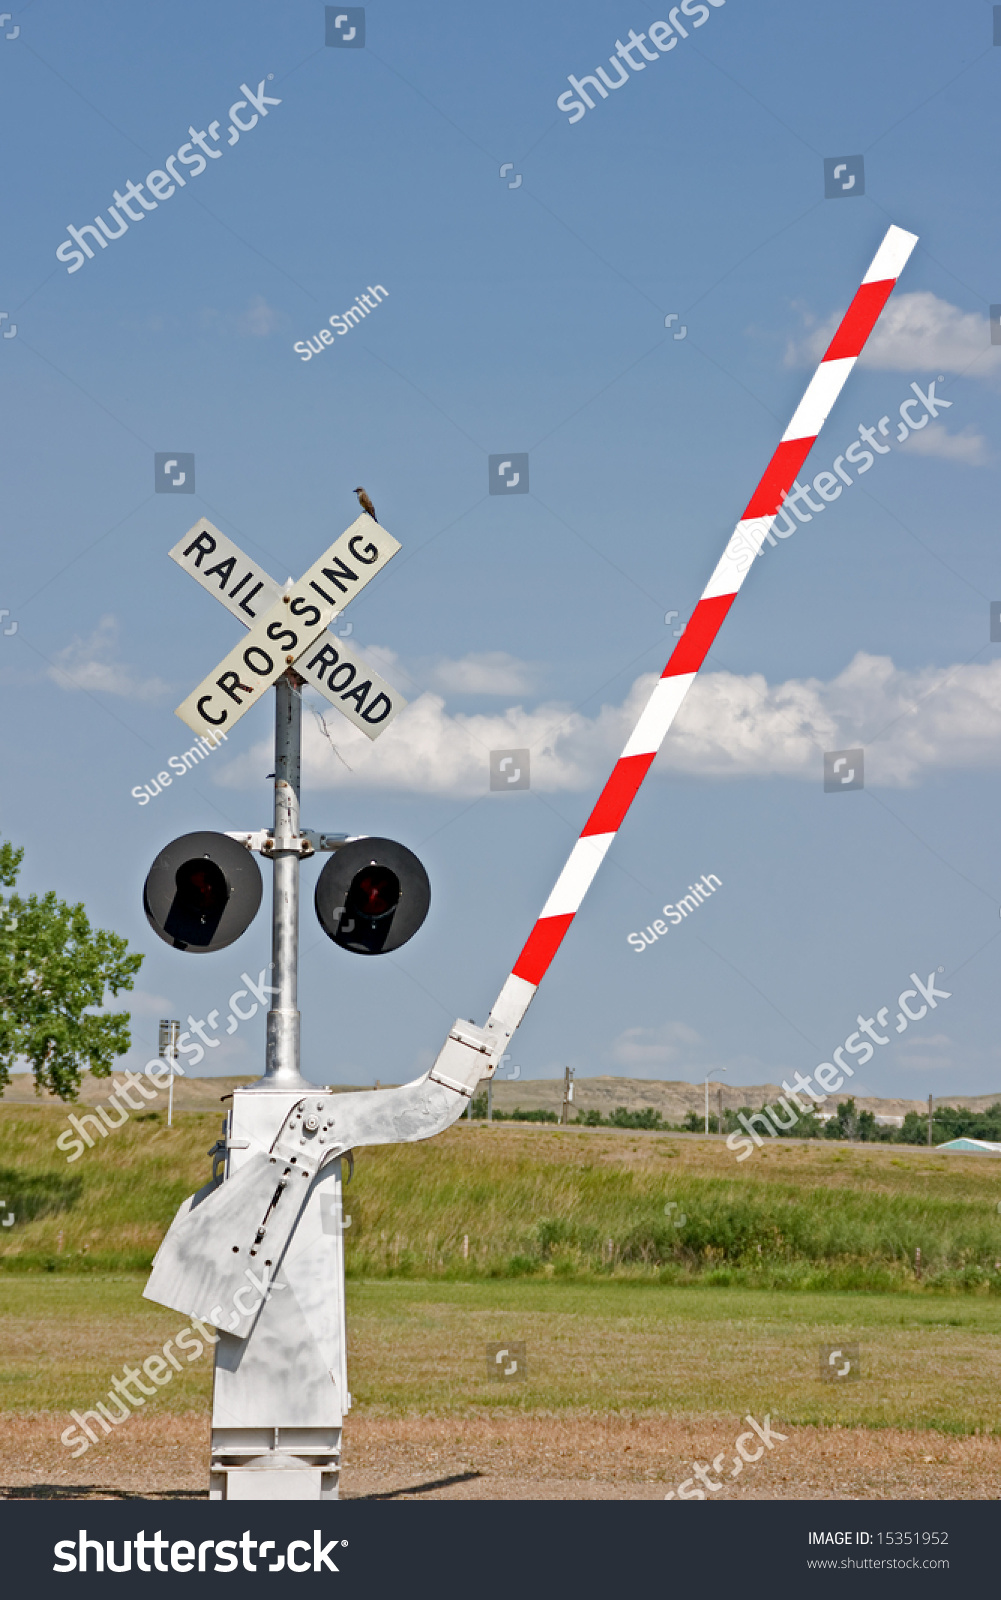 stock-photo-railroad-crossing-signal-with-lights-barrier-and-a-bird-on-the-sign-at-a-museum-15351952.jpg